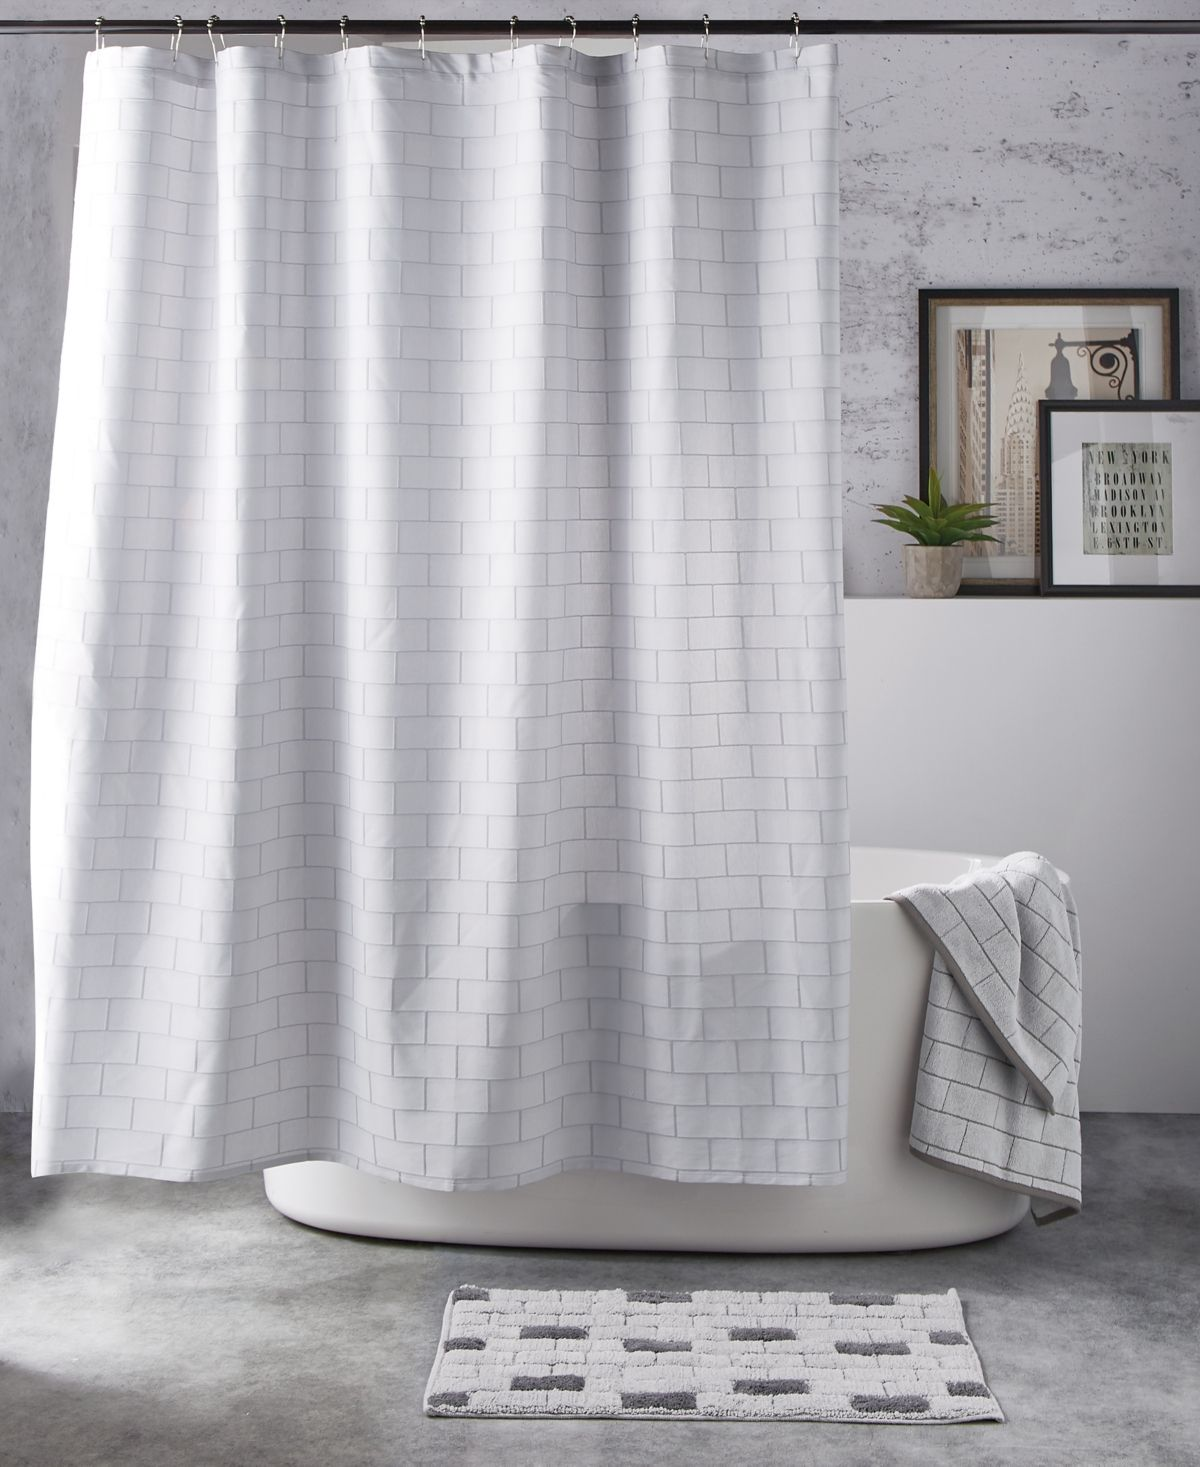 Dkny Subway Tile Bath Accessories Collection Reviews Bathroom